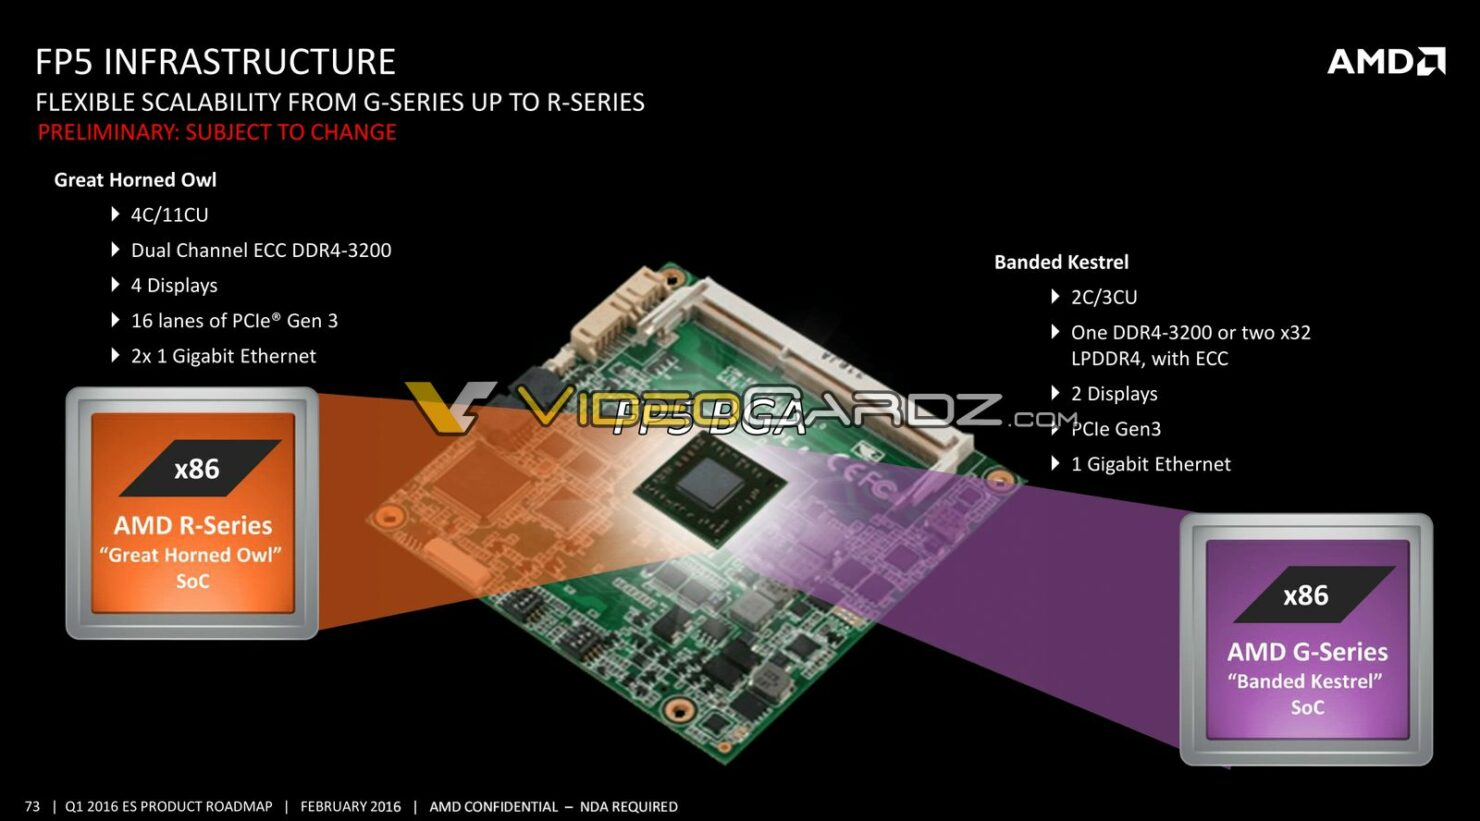 amd-great-horned-owl-soc-for-embedded-r-series-platform_features-2